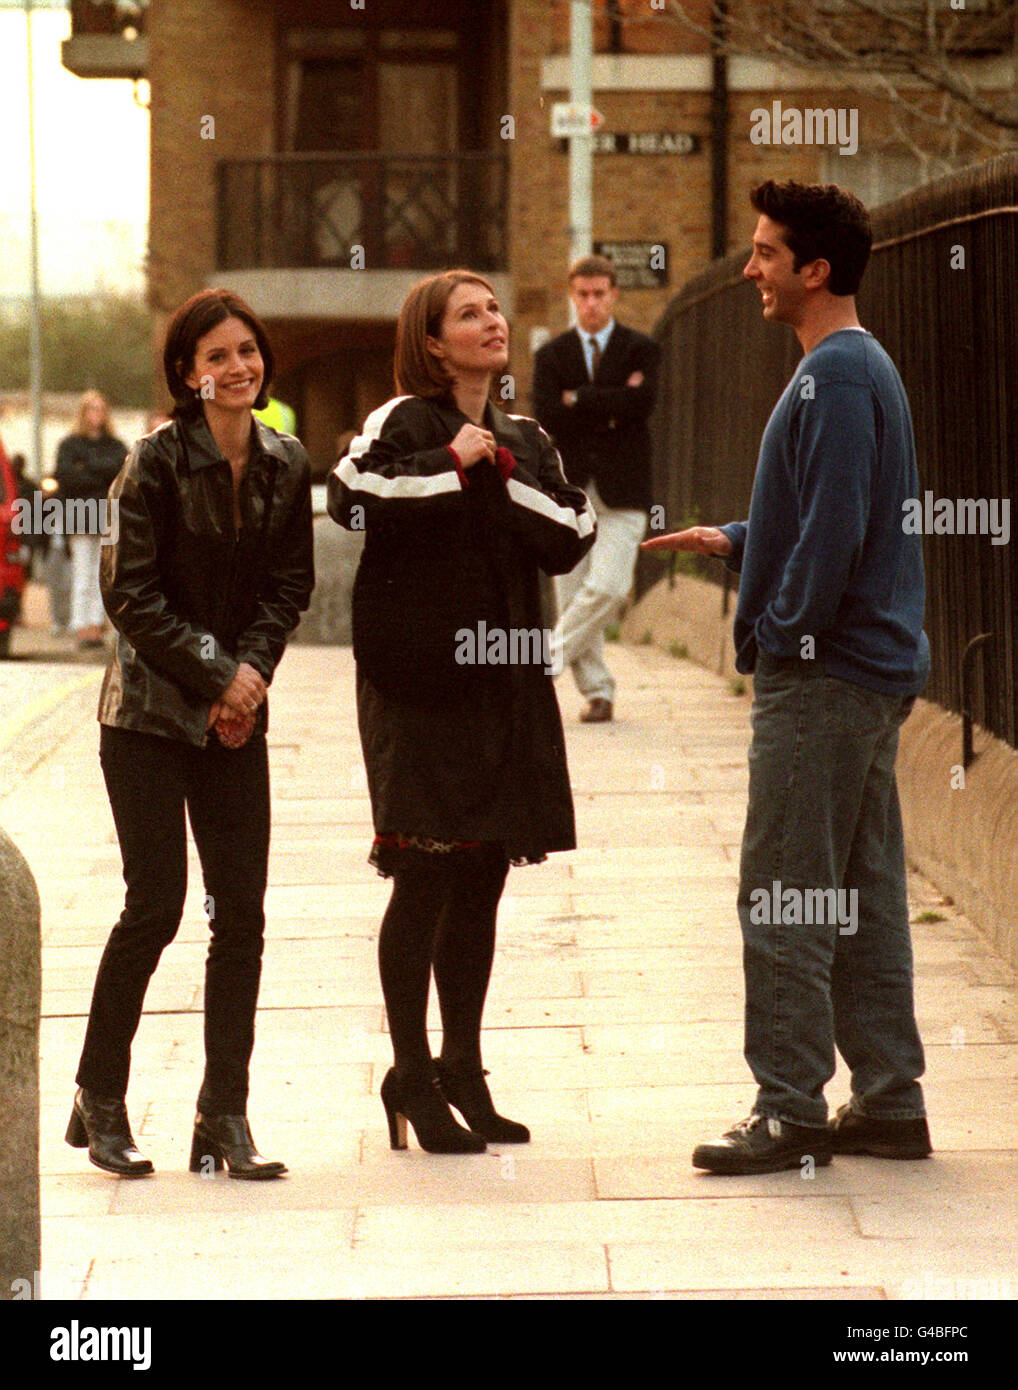 PA NEWS PHOTO 30/3/98 FROM LEFT TO RIGHT: Courteney Cox,